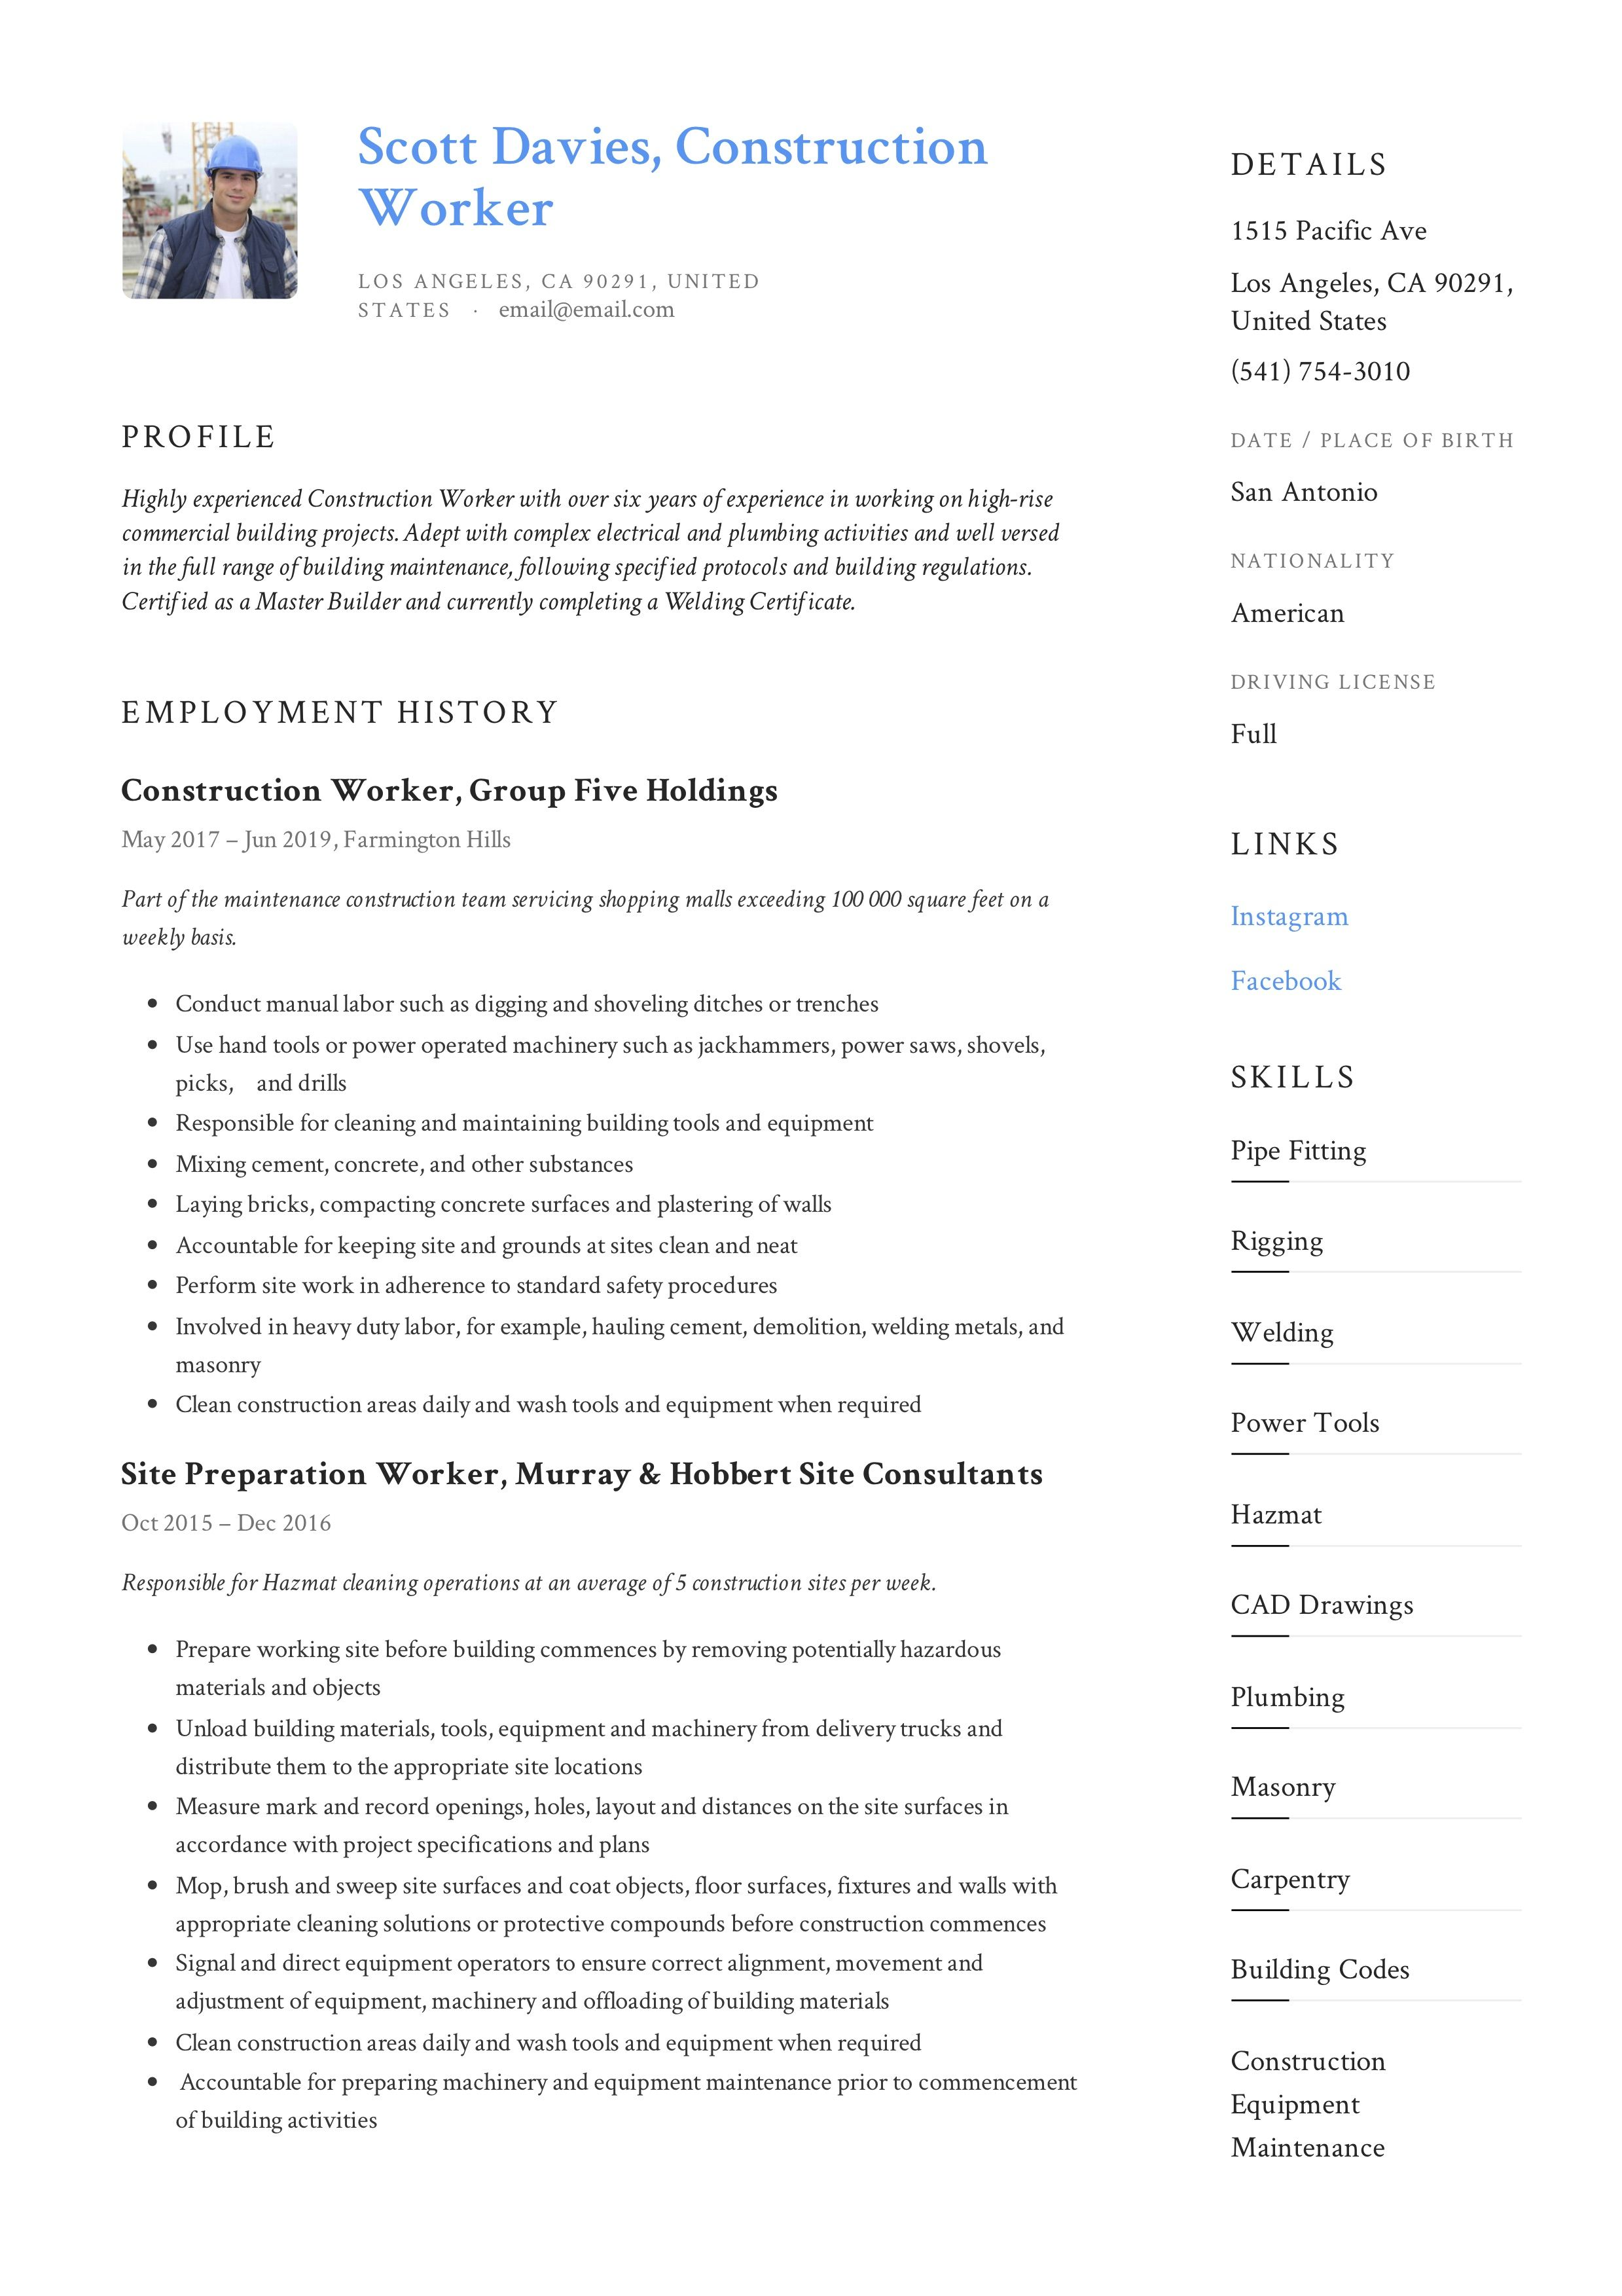 Construction worker resume writing guide in 2020